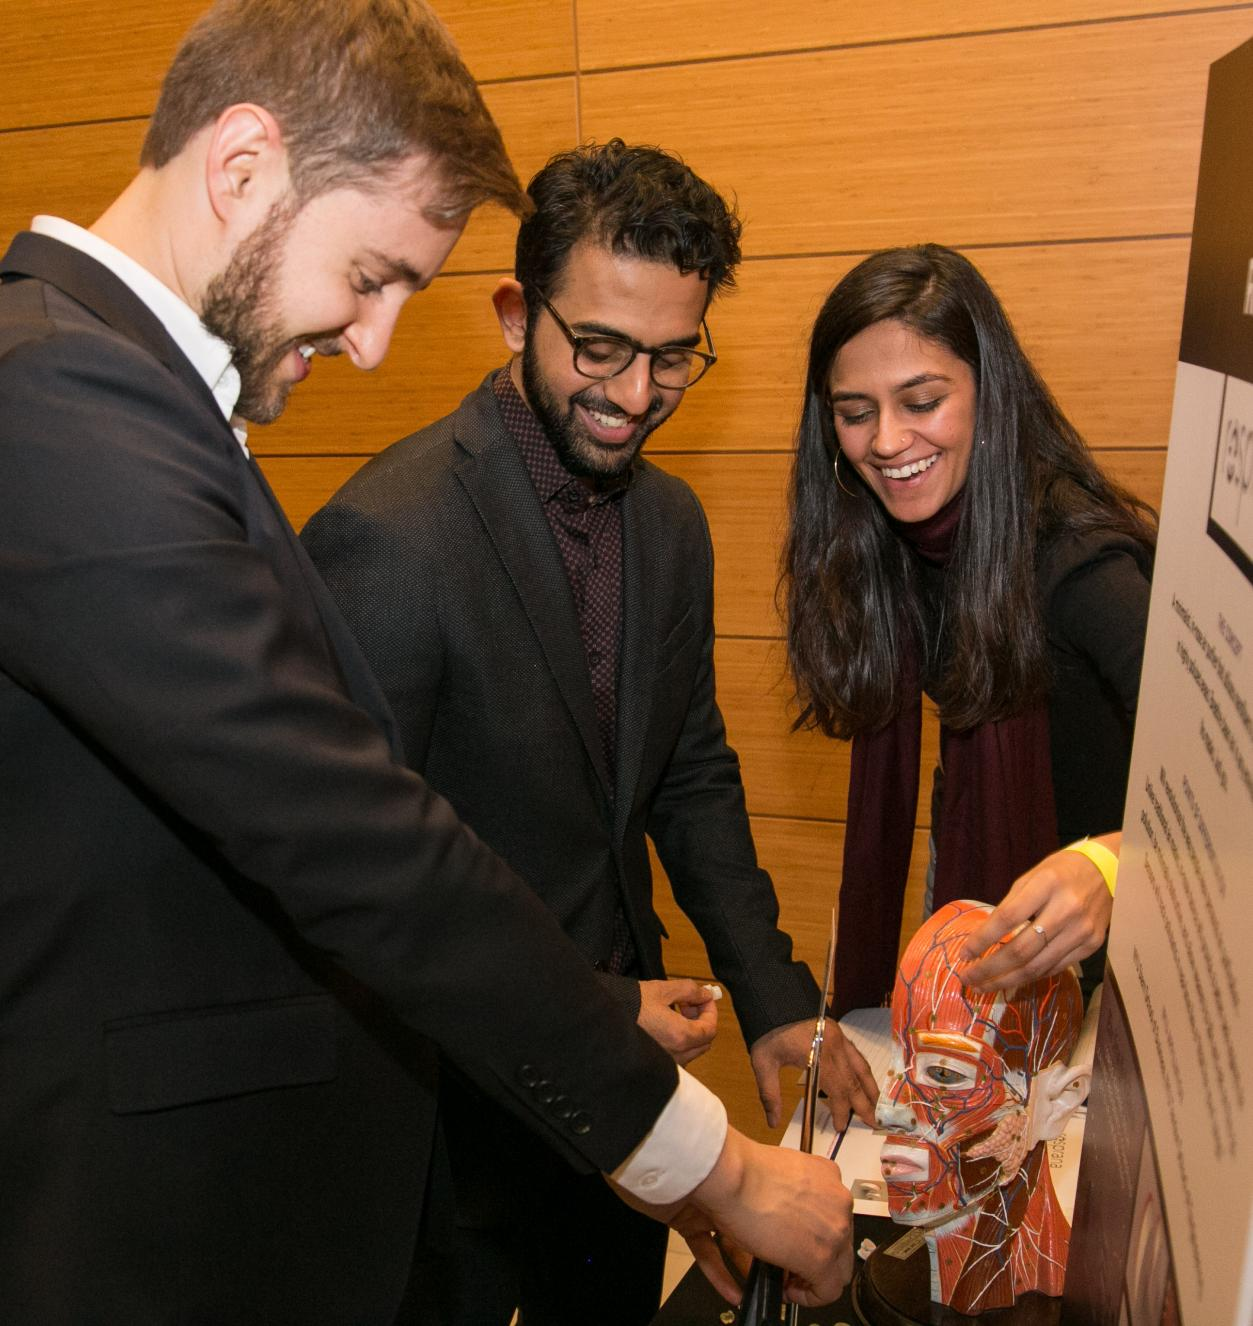 This is an image of three students at the Venture Showcase looking at a fake human skull.